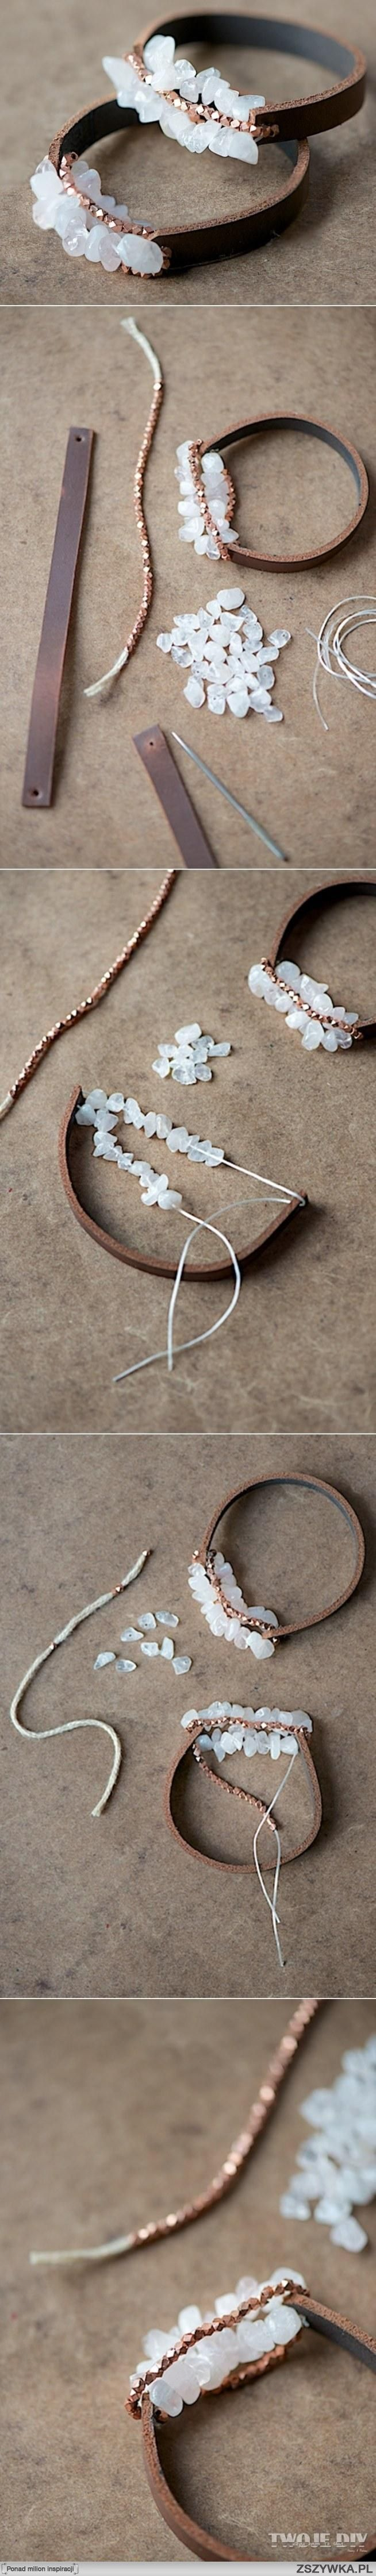 I think I could do this with a stretch string & masculine washer or beads for Chase!